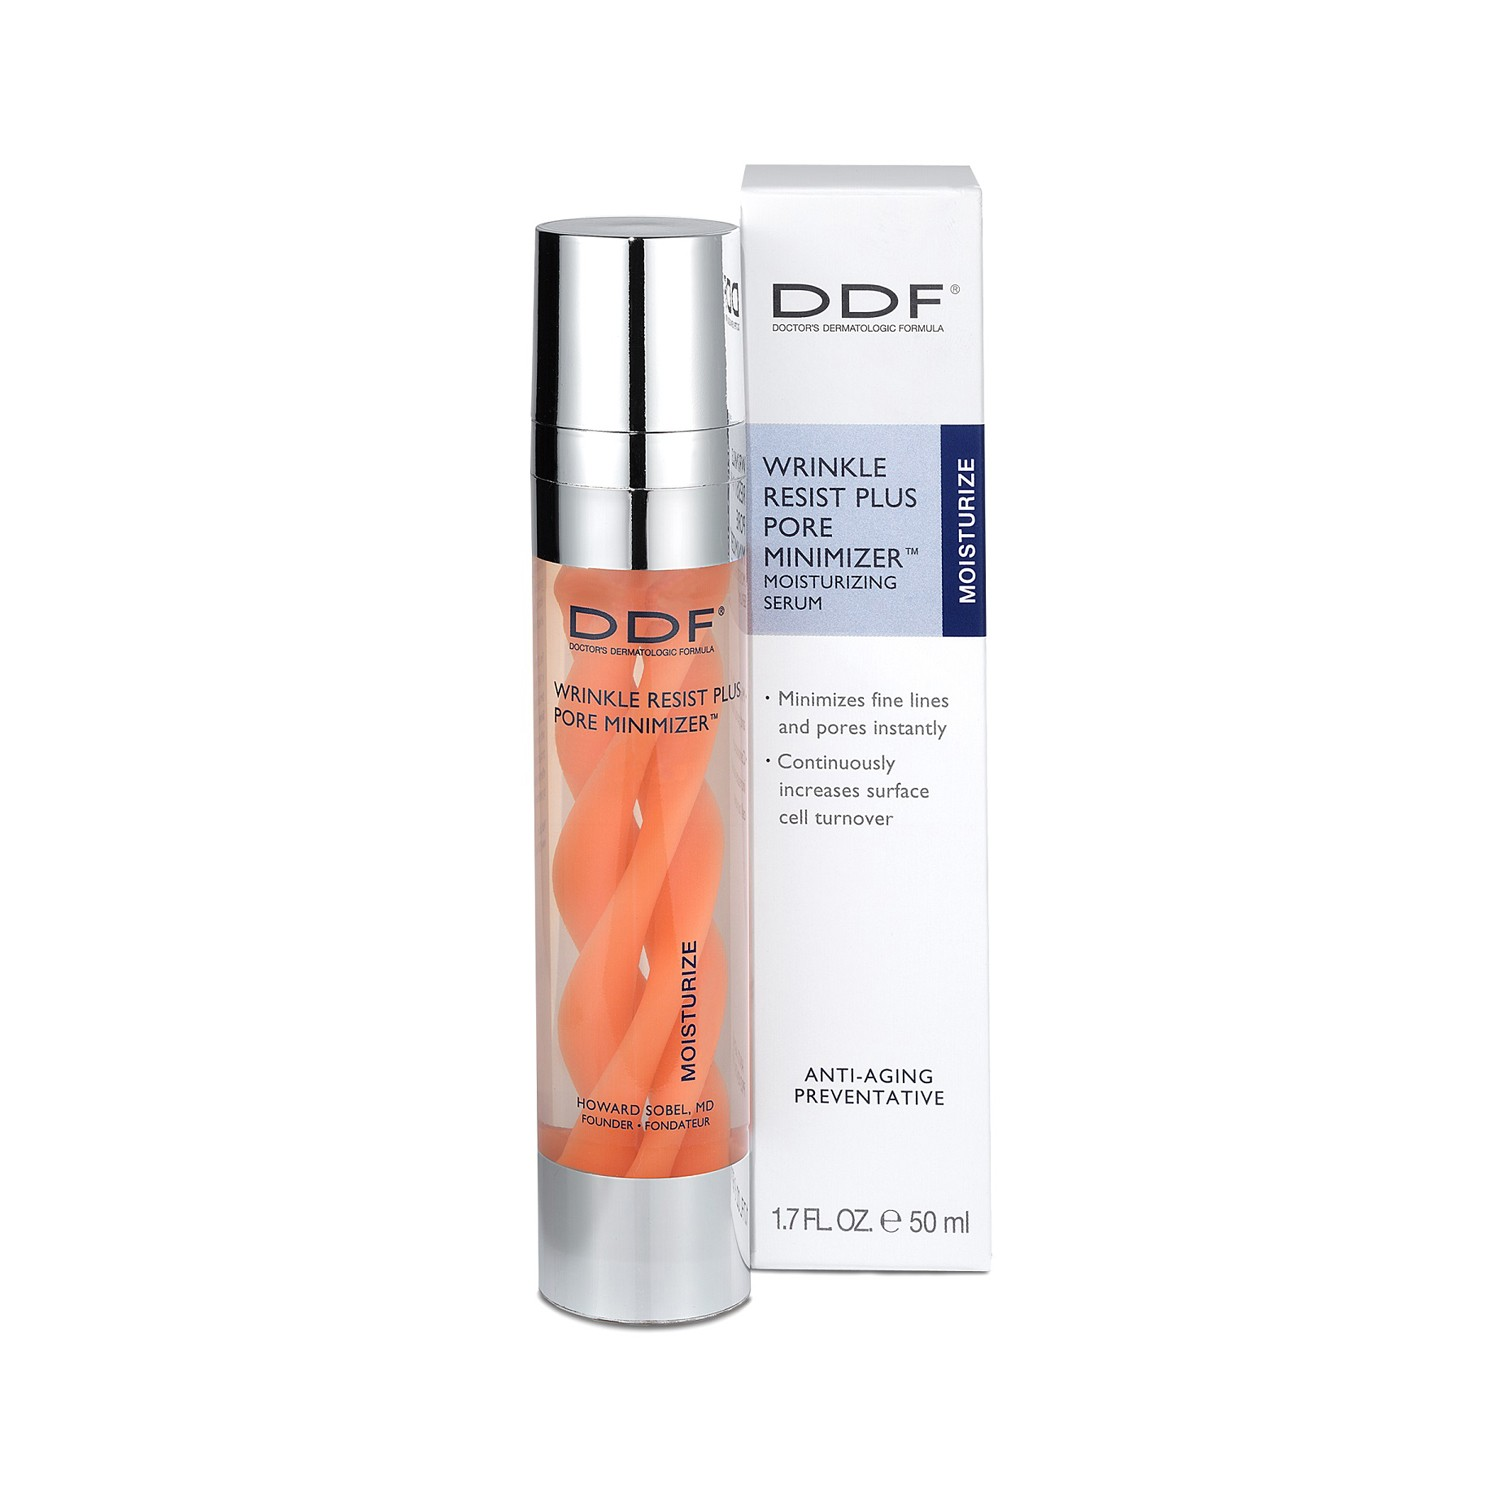 9820-DDF_Wrinkle-Resist-Plus-Pore-Minimizer_72dpi_1-8-14.jpg